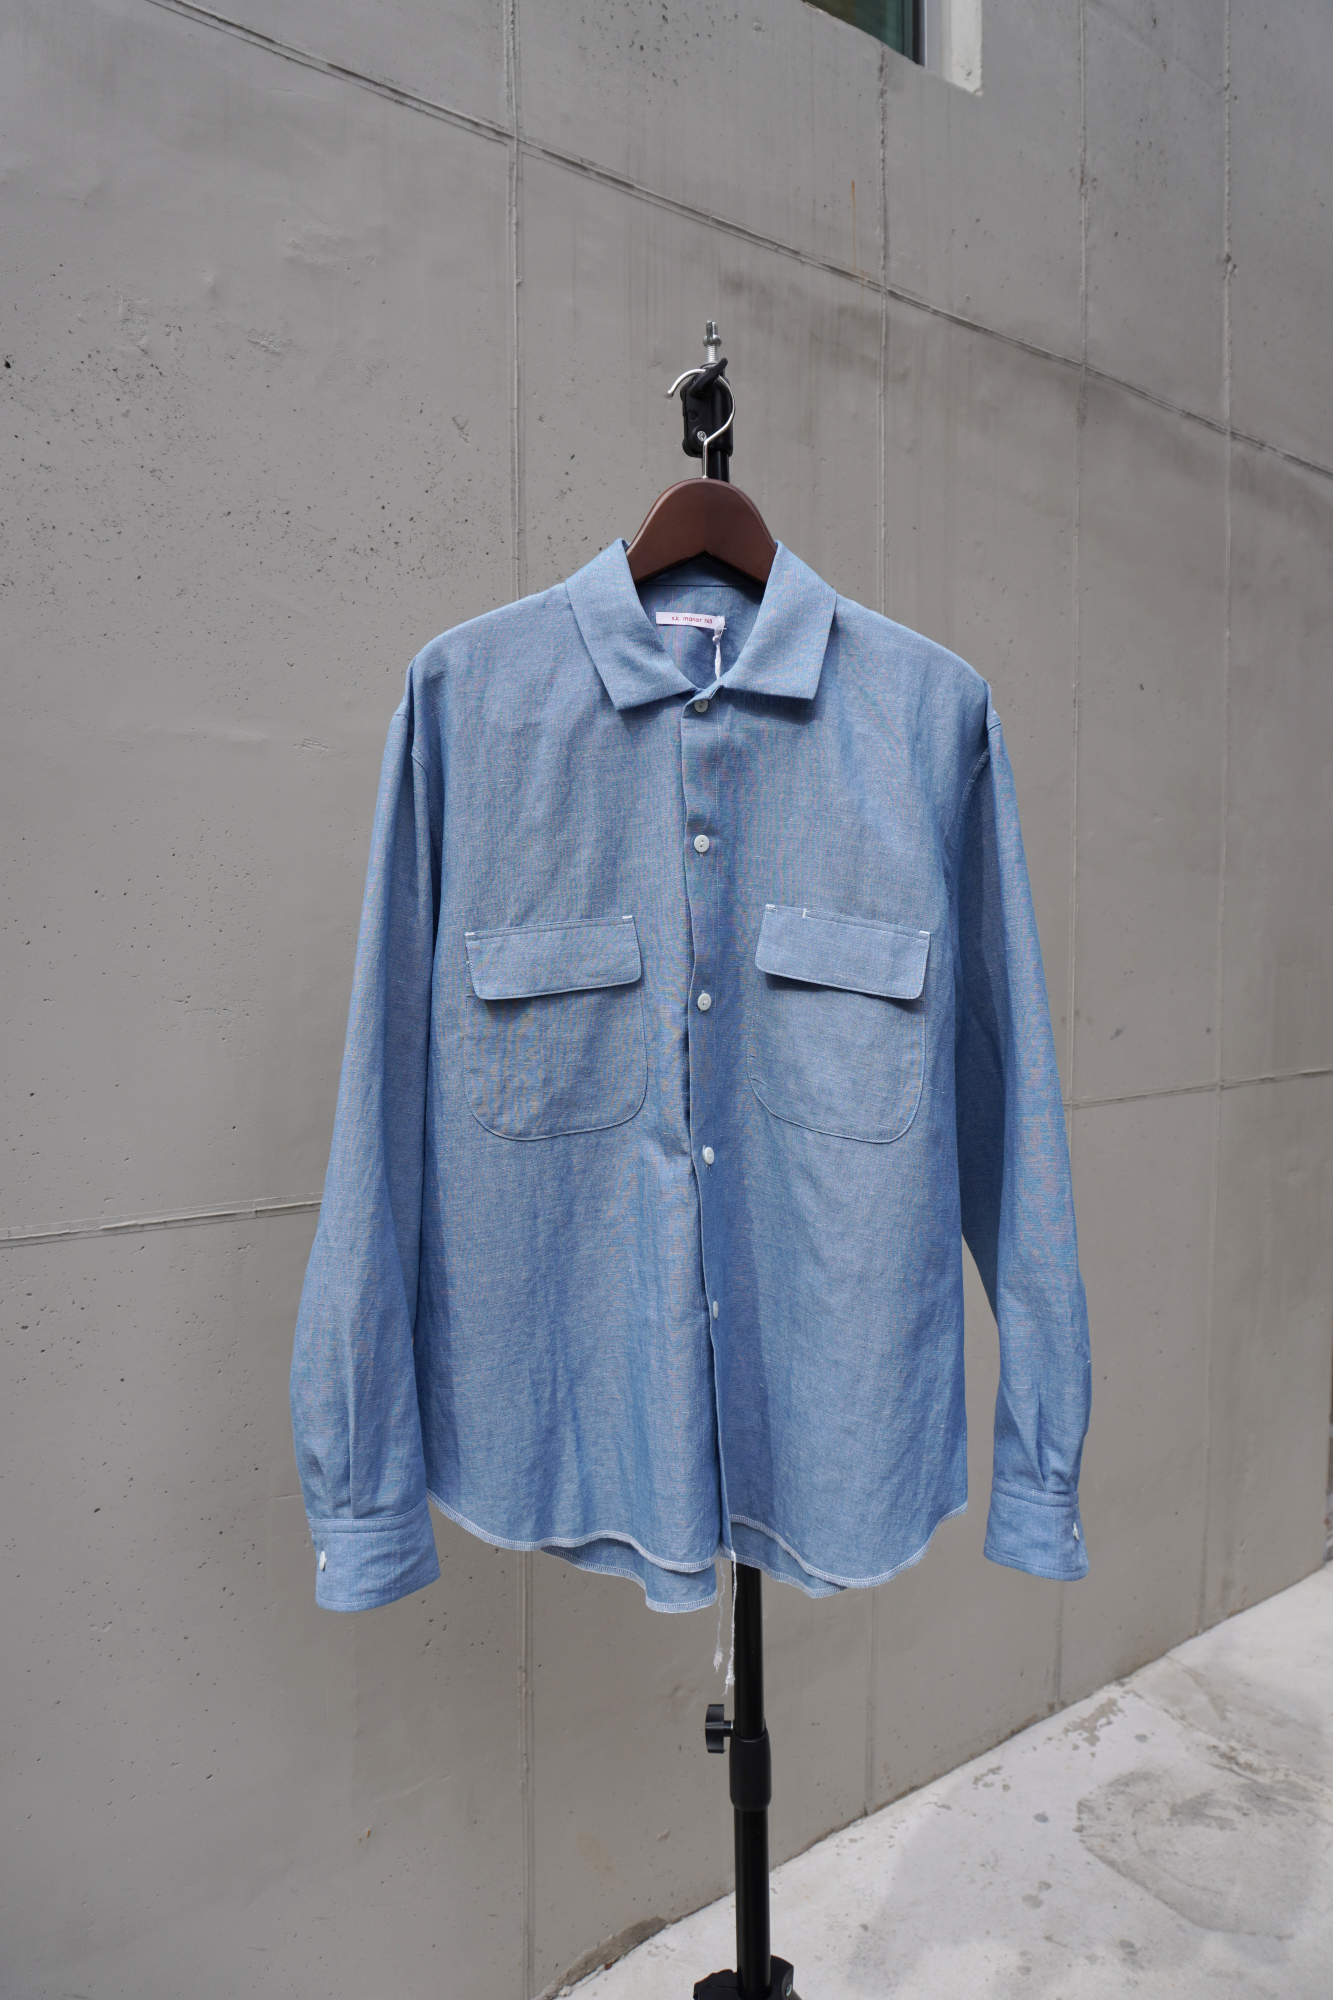 [S.K. MANOR HILL] Moil Shirt - Indigo Cotton/Linen